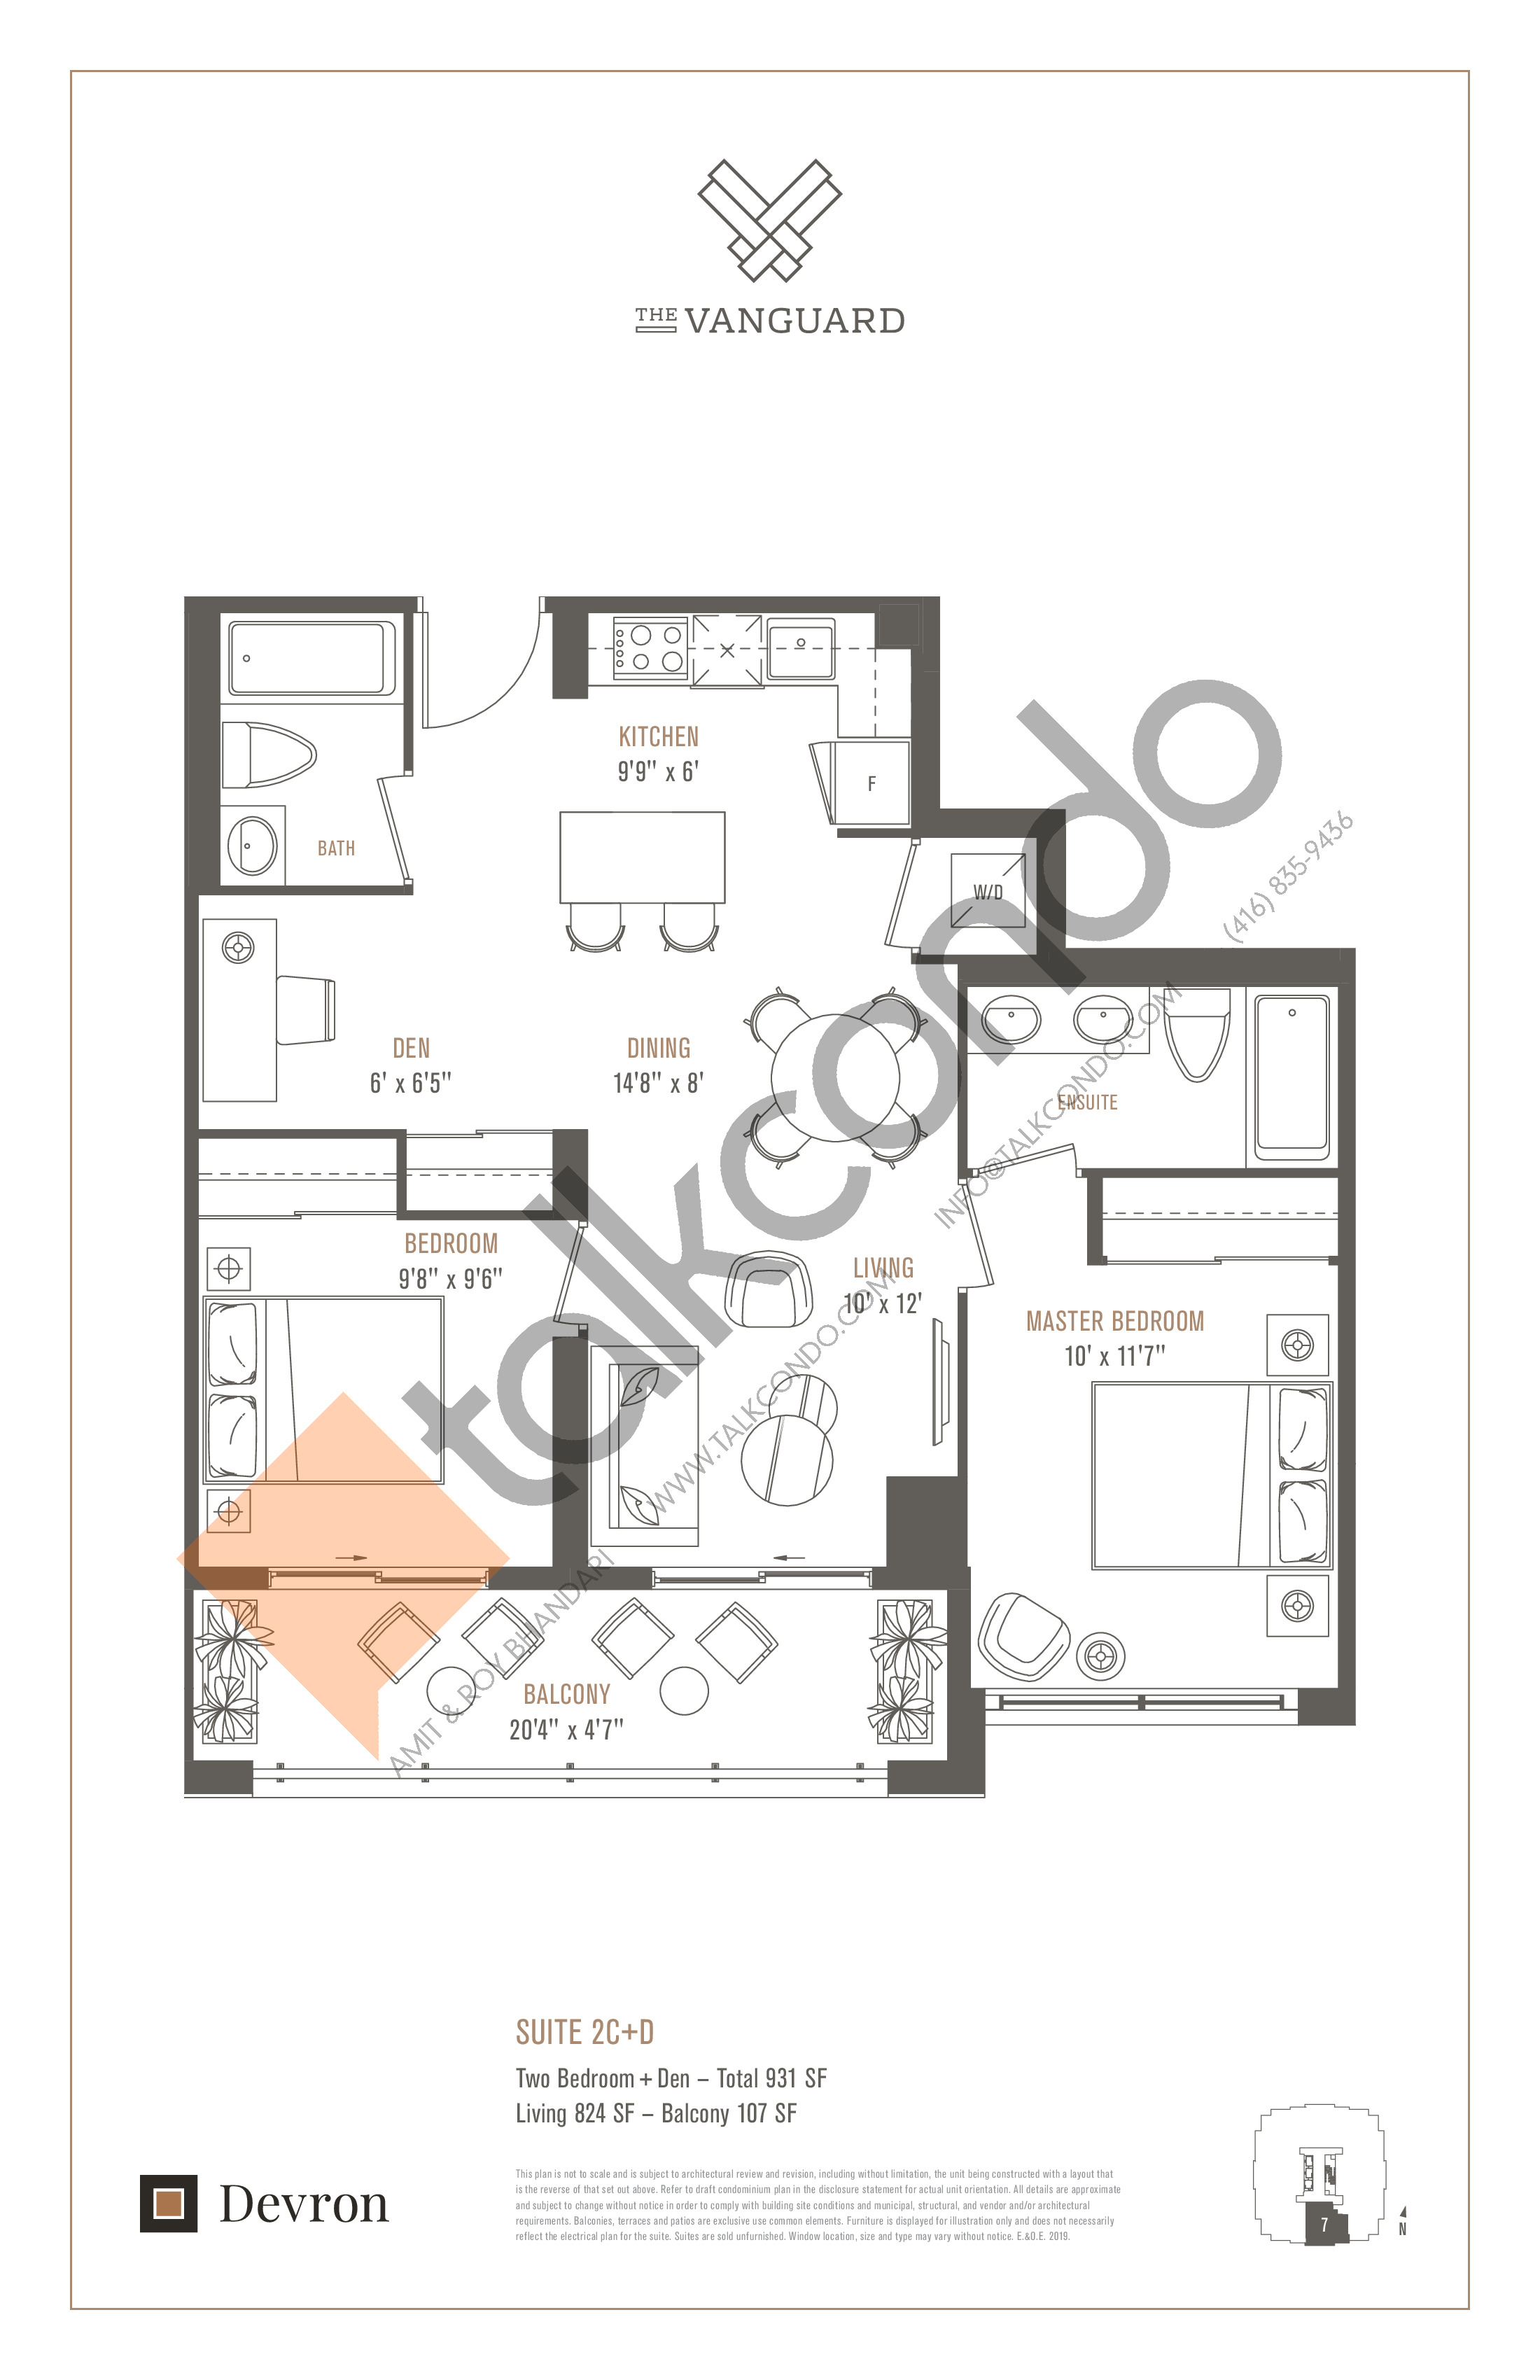 Suite 2C+D Floor Plan at The Vanguard - 824 sq.ft